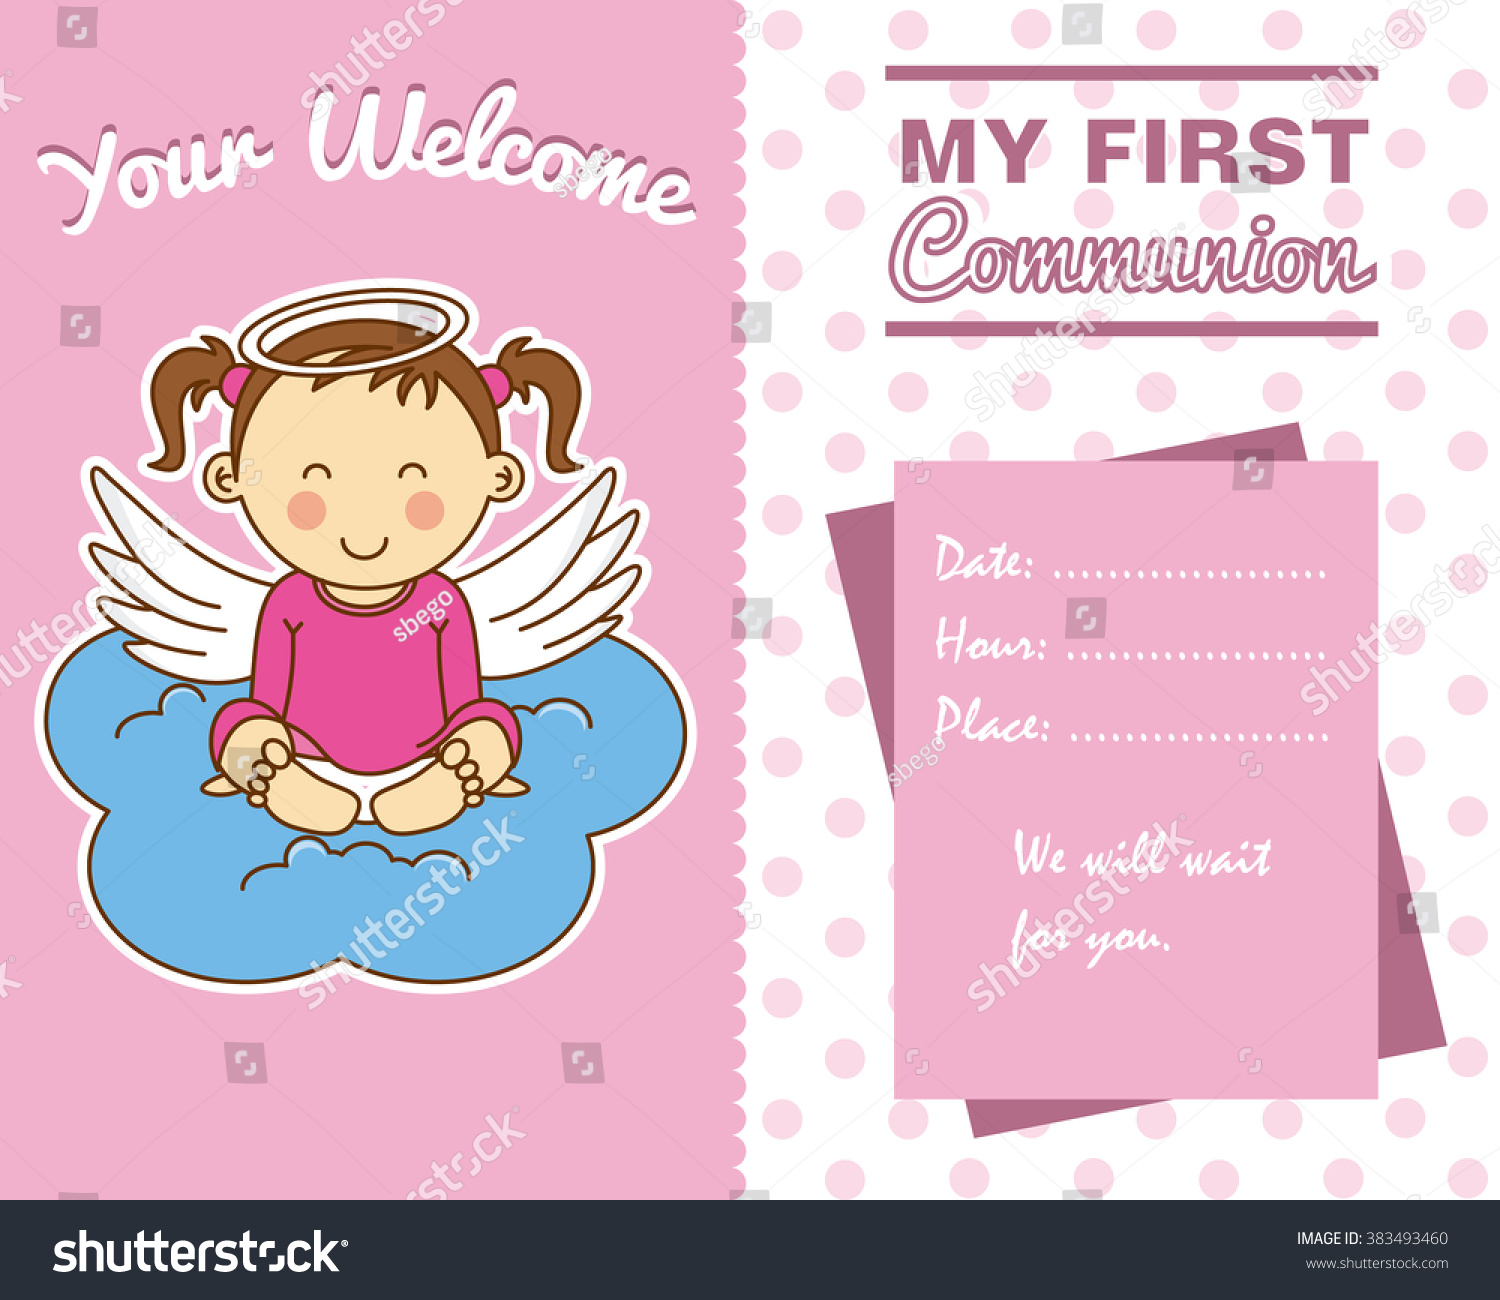 Uncategorized Girlspace communion girl space text stock vector 383493460 shutterstock for text